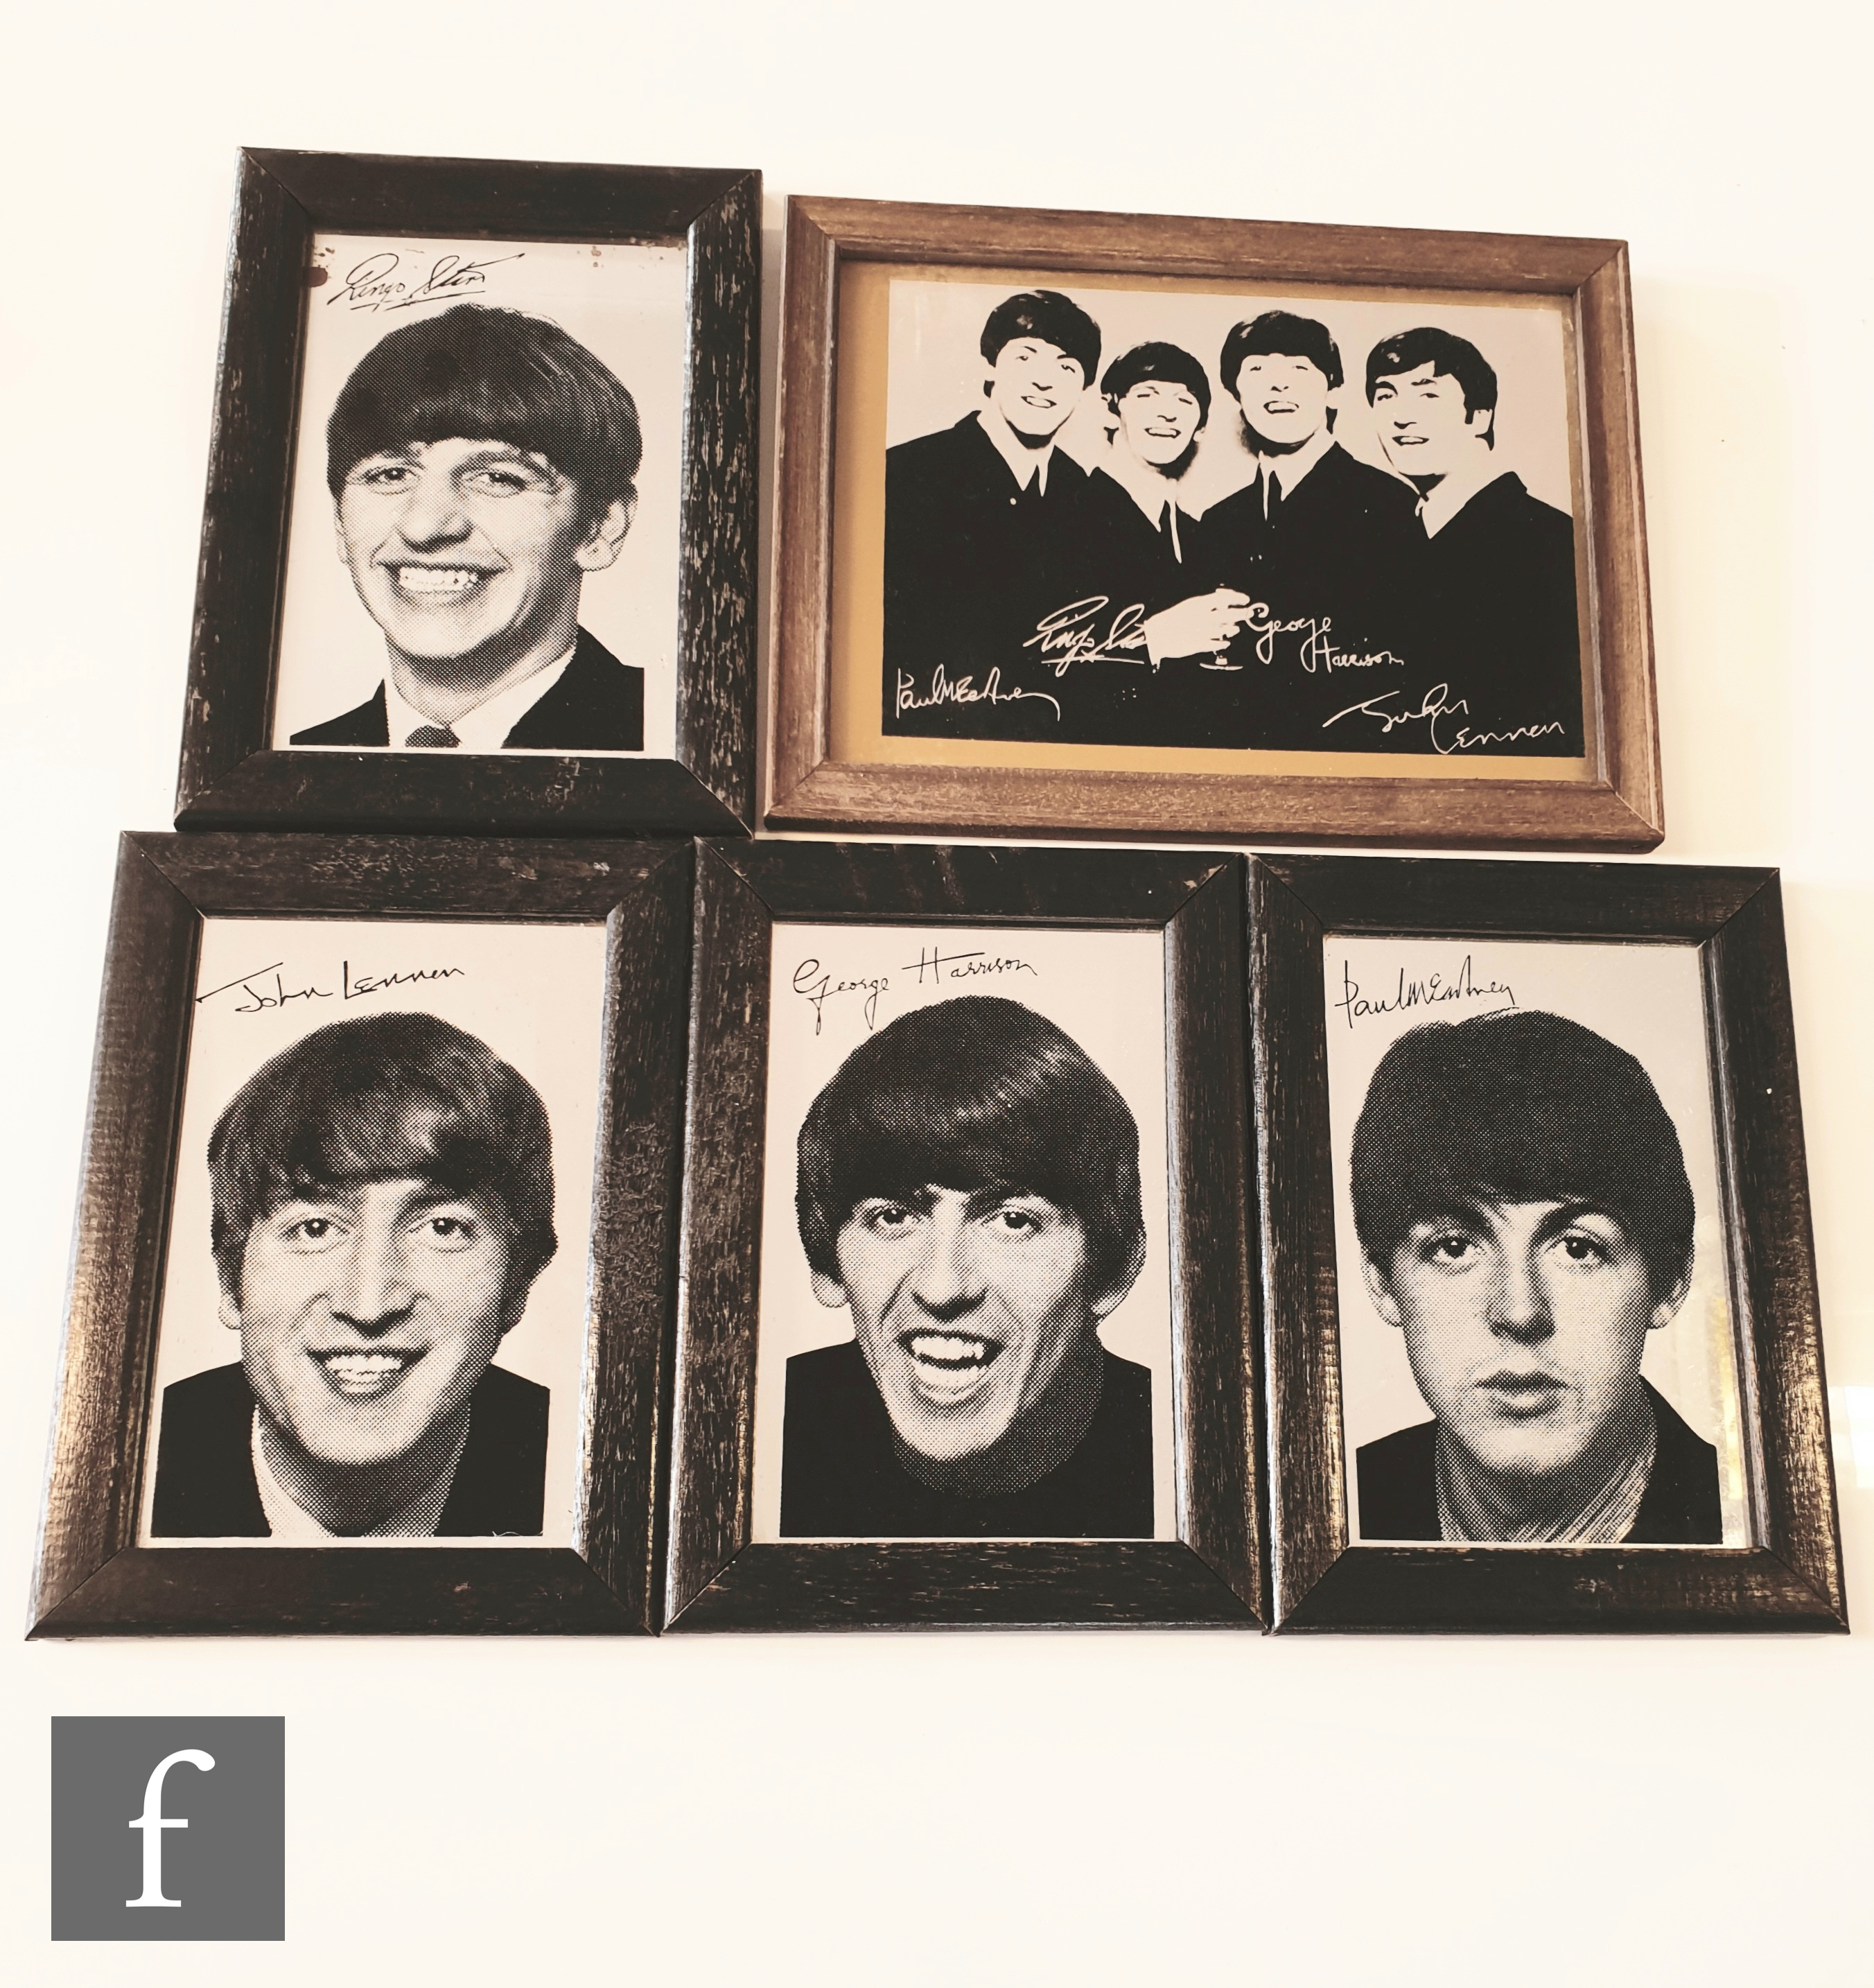 A group of four framed mirrors each printed with a portrait of John Lennon, Paul McCartney, George